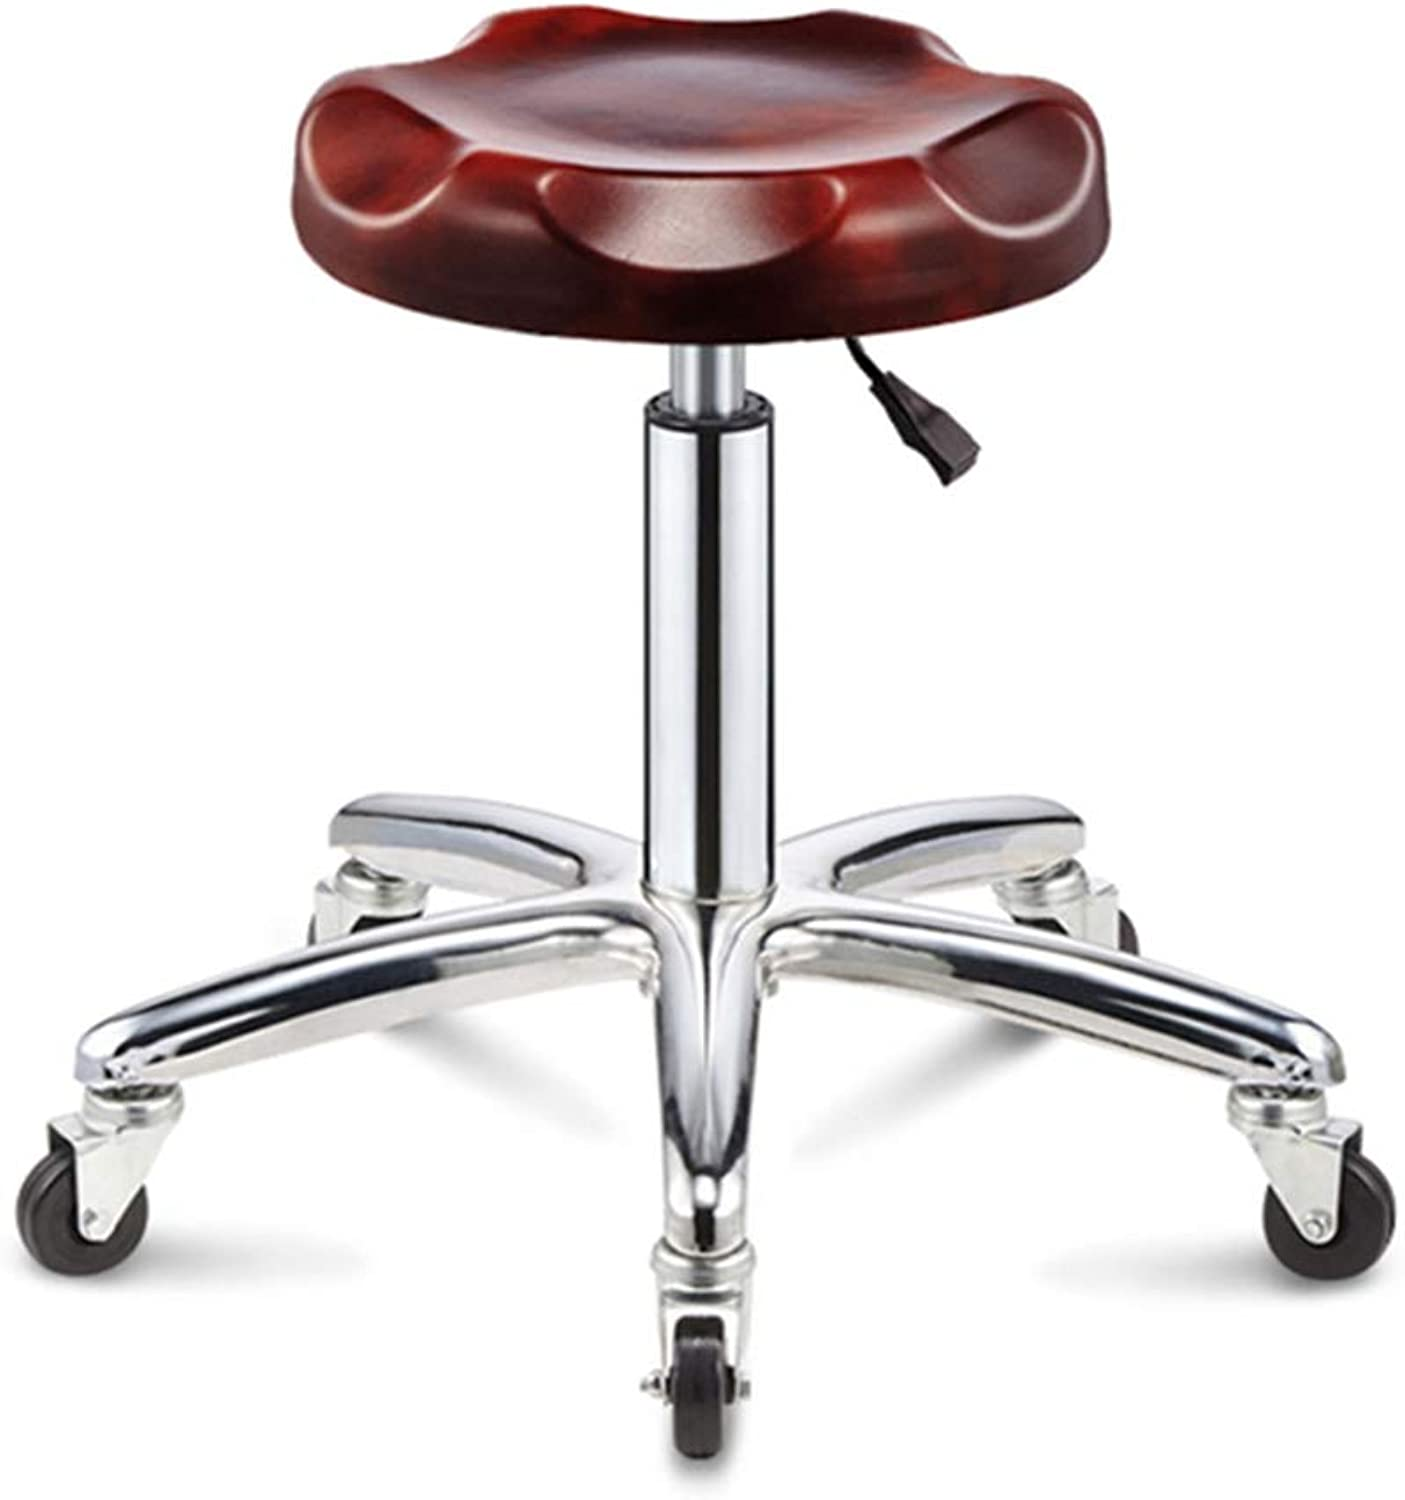 Home Office Chair - Wheel 360° redation, Stainless Steel Adjustable Height Chair-red